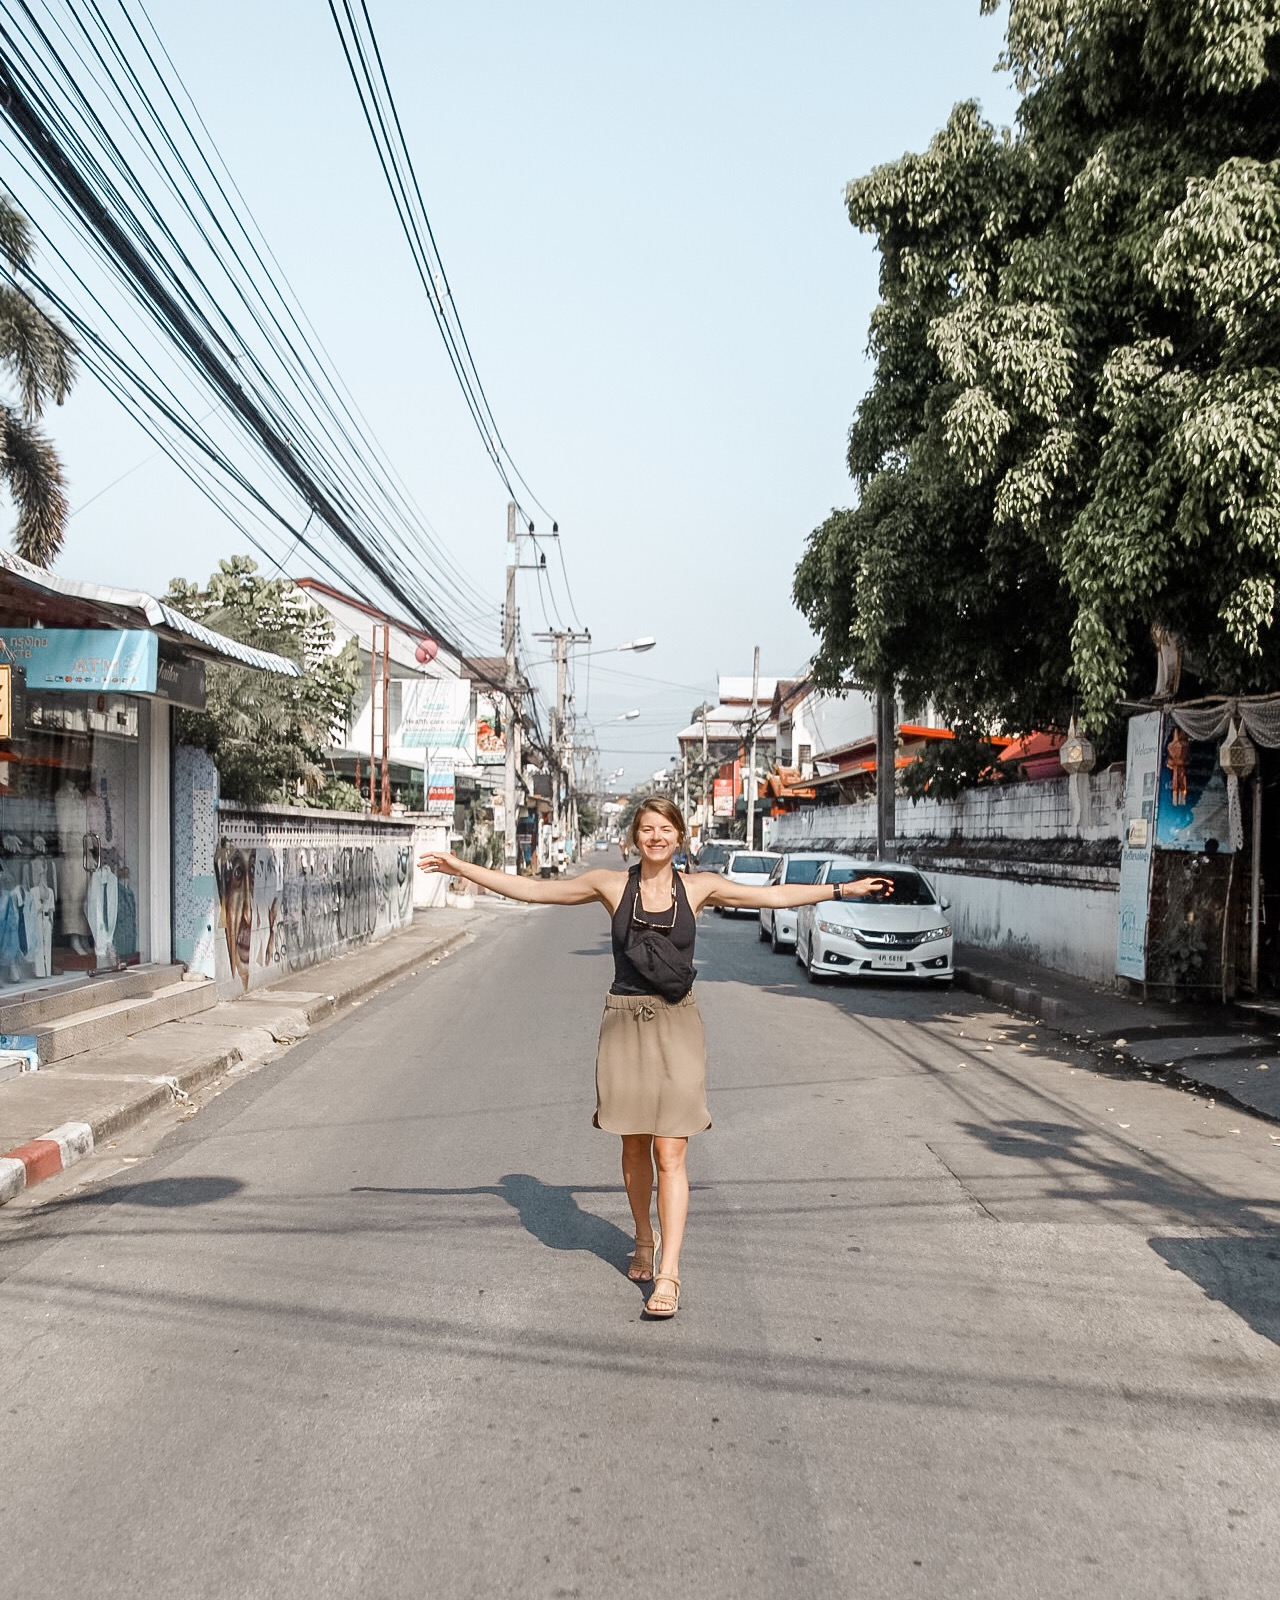 Thailand Travel Guide; Where to eat, stay and go for your first trip to Thailand